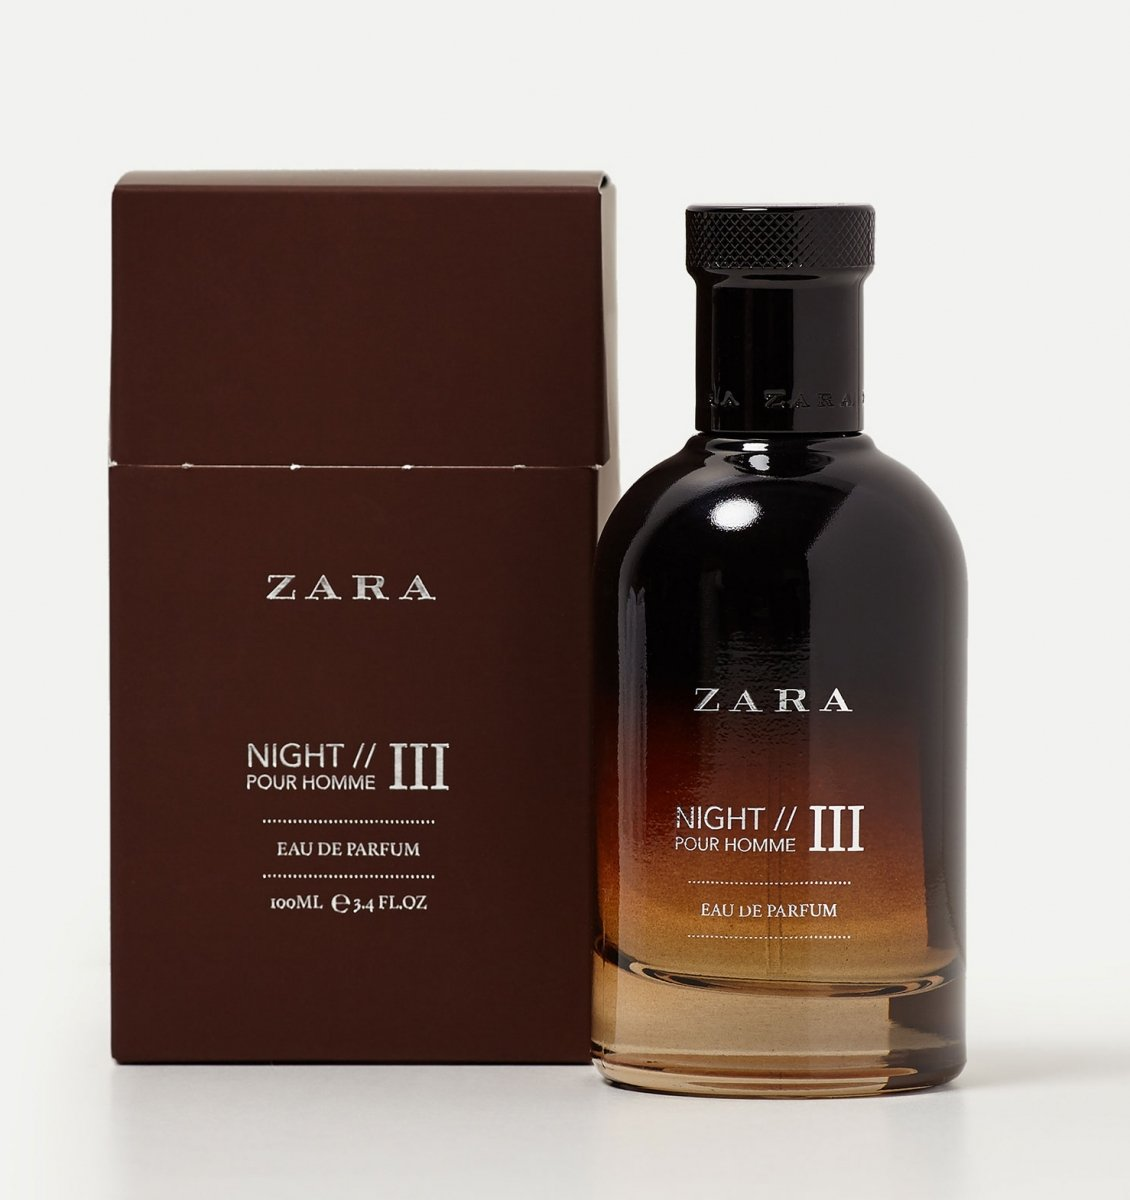 Zara night pour homme iii reviews and rating - Prix parfum zara homme ...